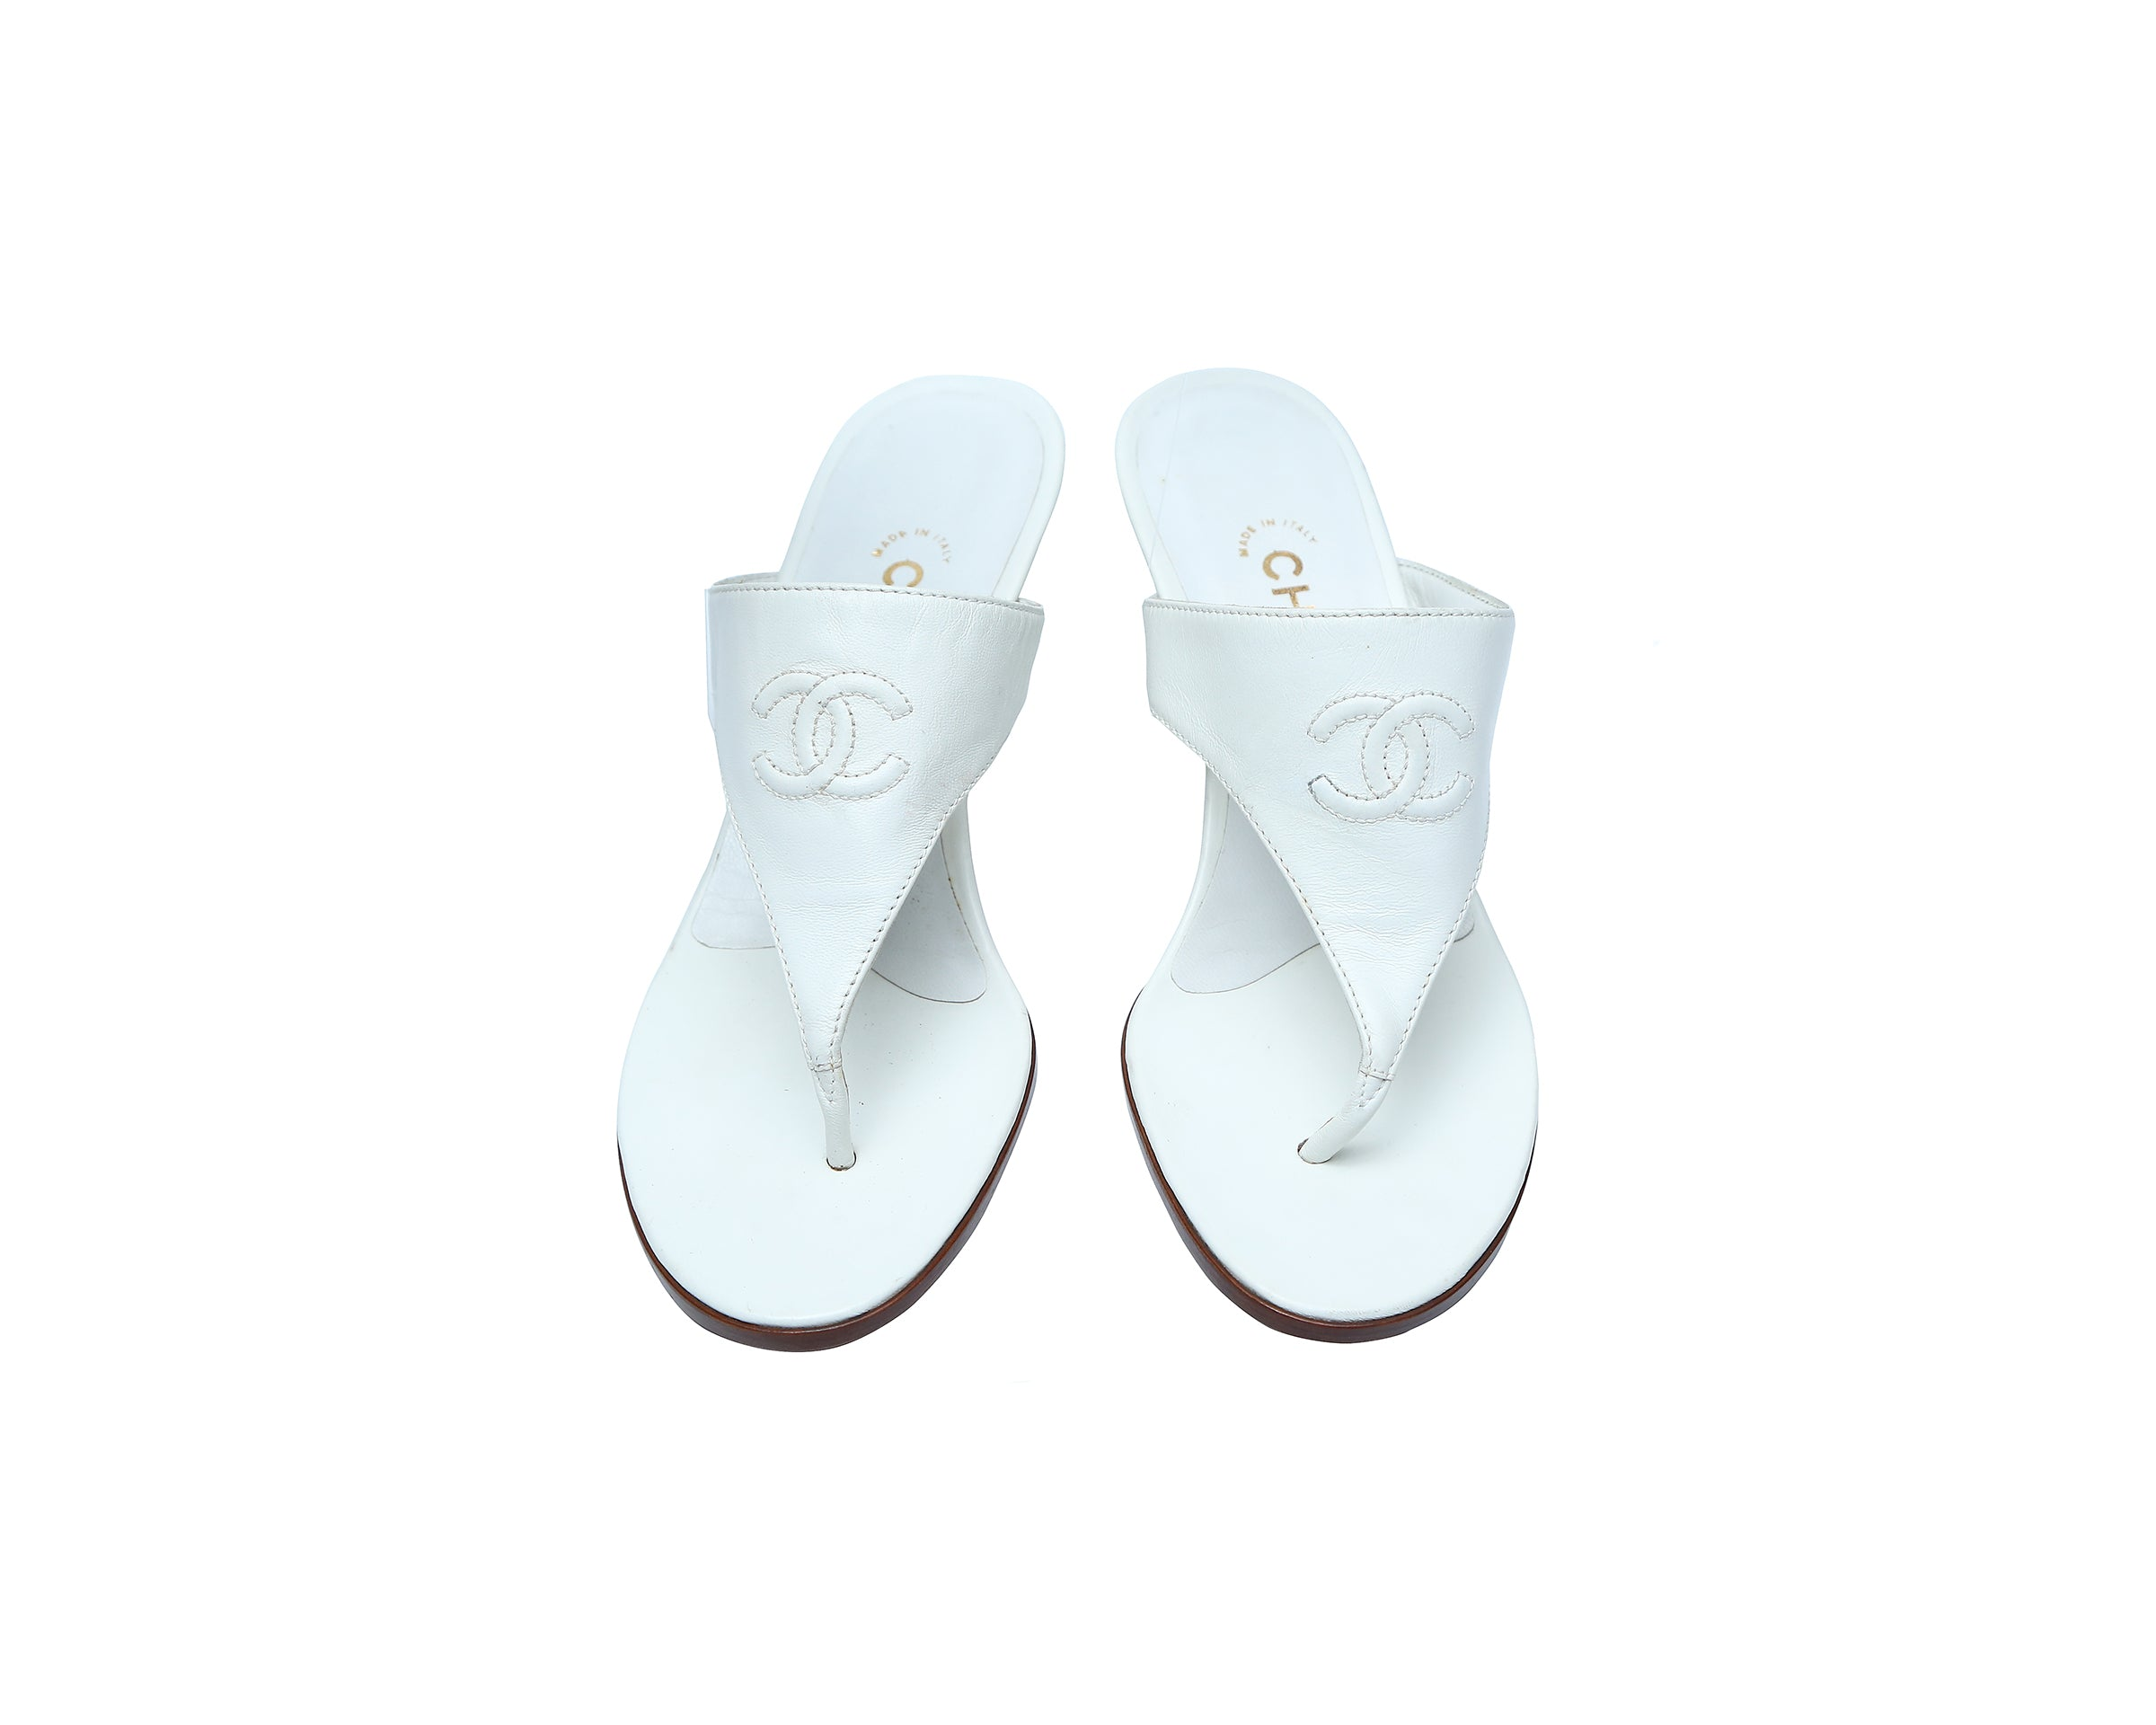 Chanel White Mules in Leather with Logo Size 37,5 (EU)